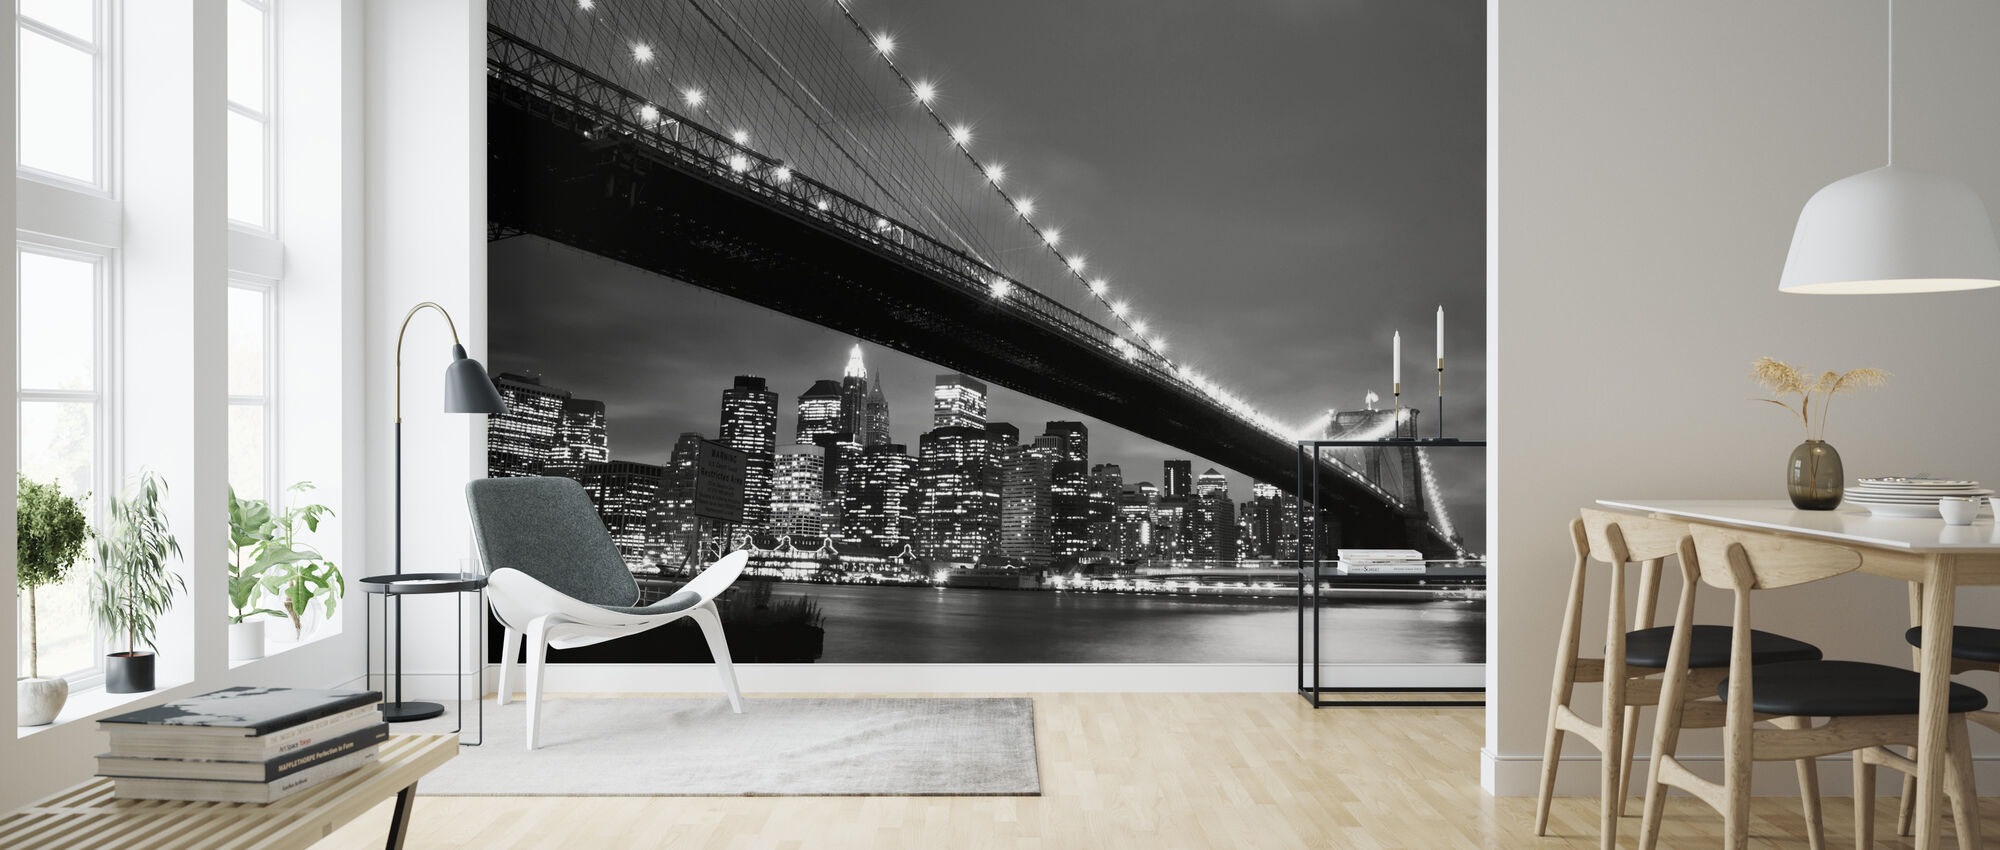 Brooklyn Bridge at Night - b/w - Wallpaper - Living Room